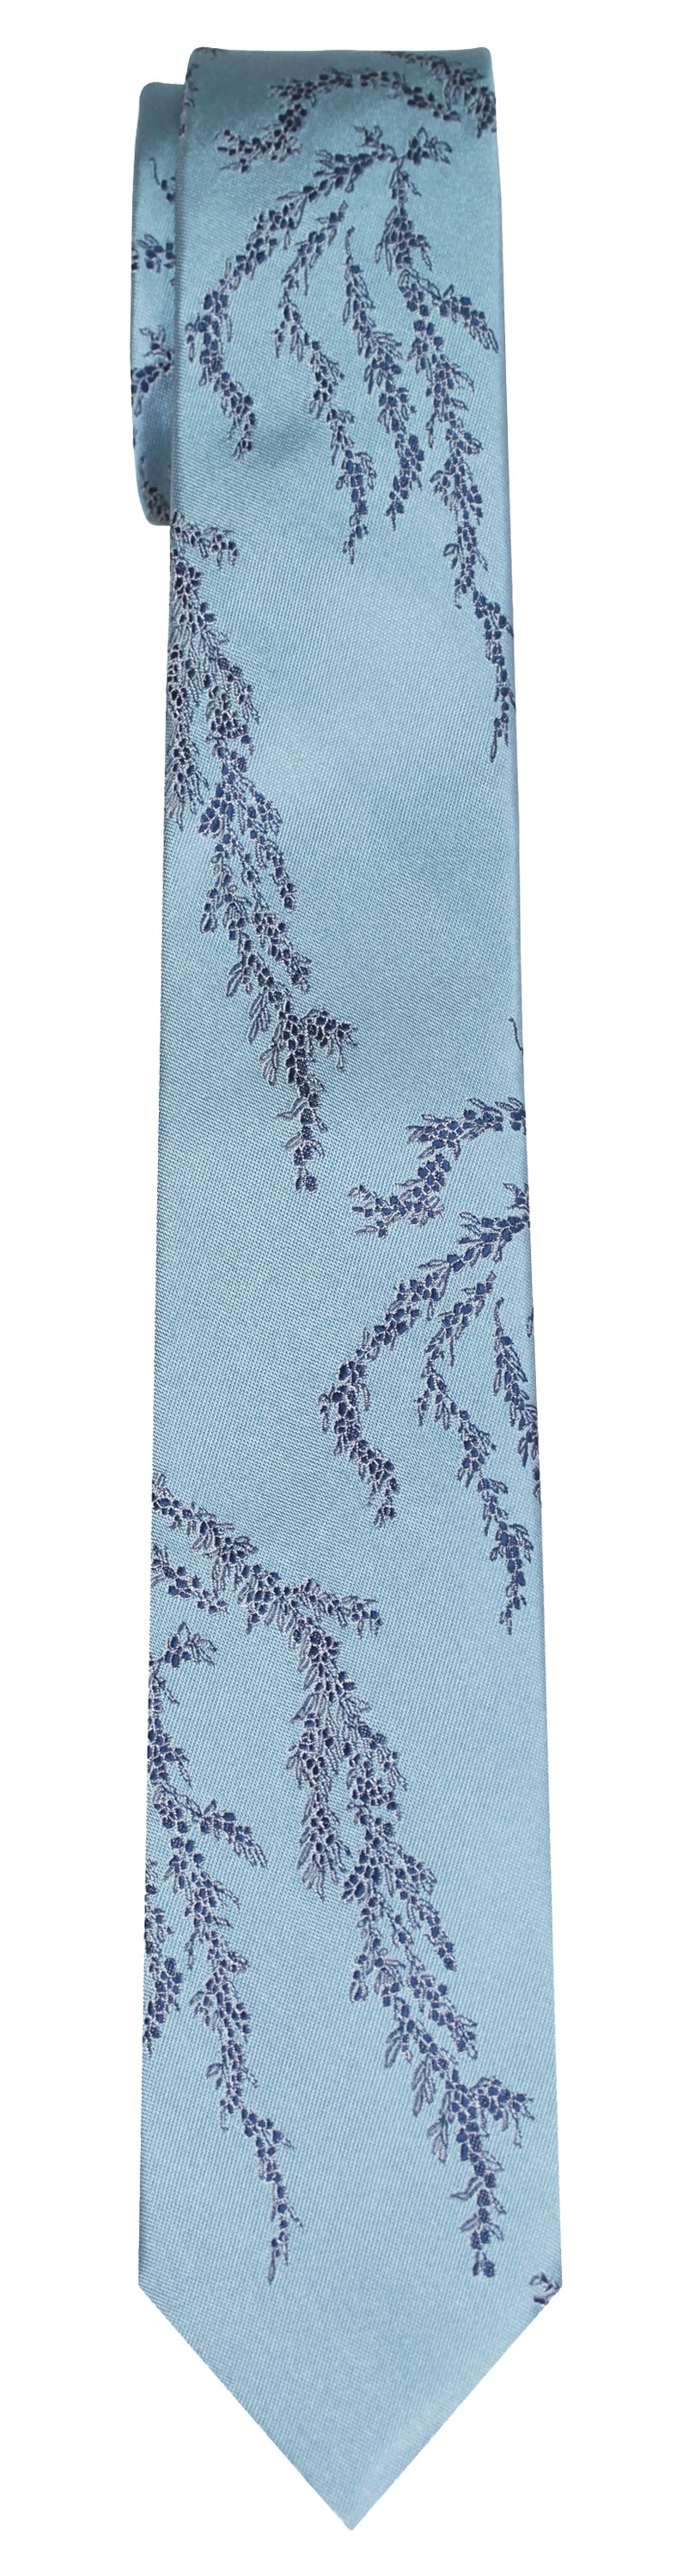 Mimi Fong Seaweed Tie in Light Blue